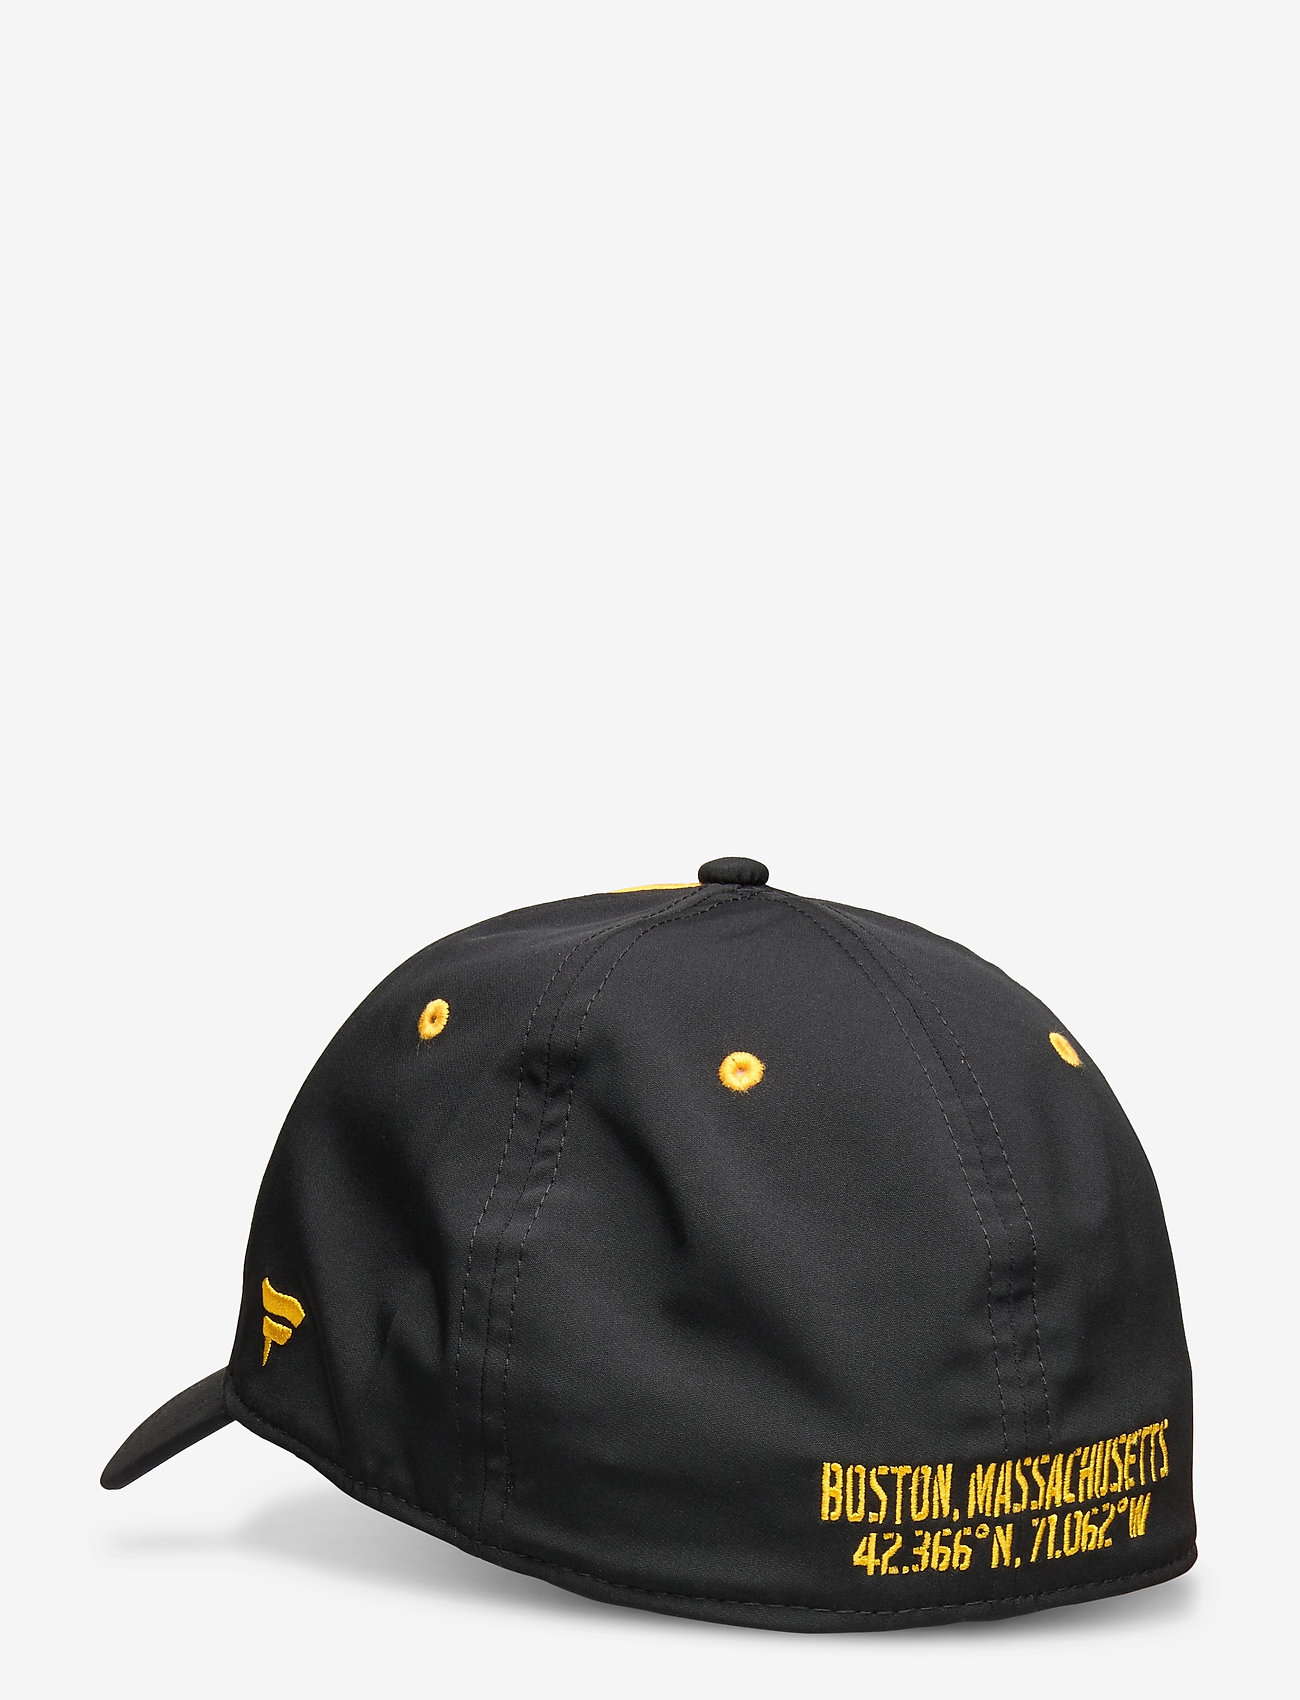 Fanatics - Boston Bruins Iconic Defender Stretch Fit Cap - caps - black/yellow gold - 1